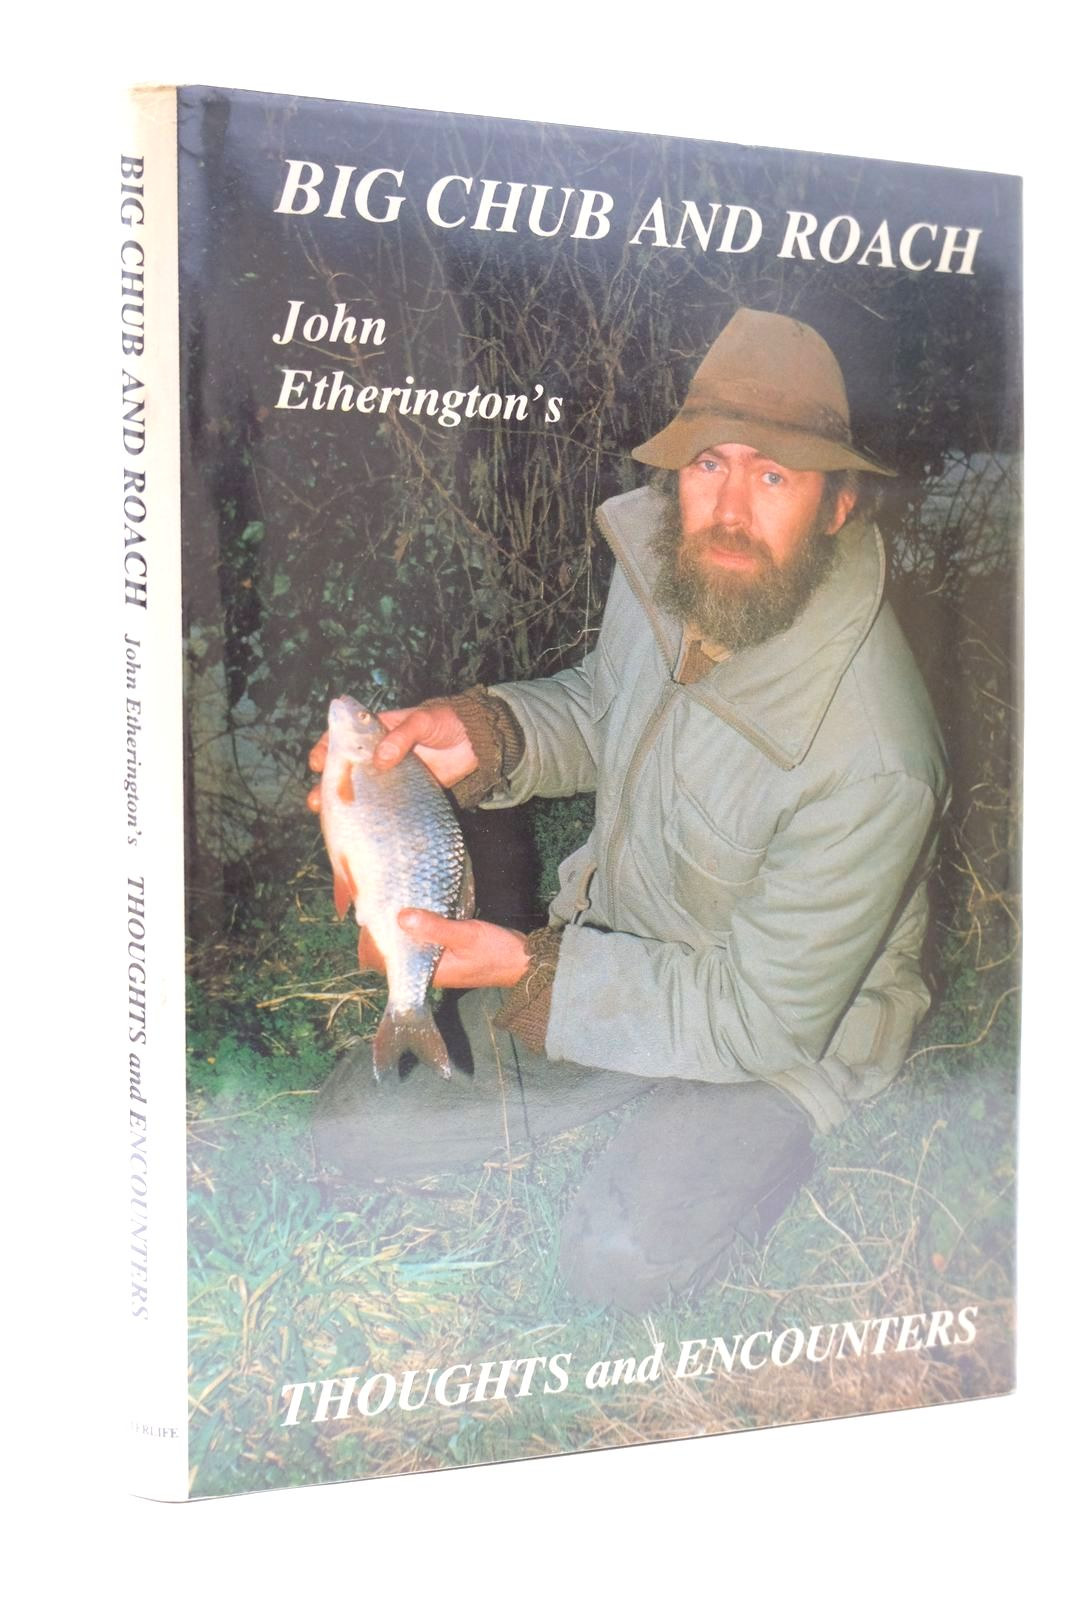 Photo of BIG CHUB AND ROACH written by Etherington, John published by Waterlife Publishers (STOCK CODE: 2131843)  for sale by Stella & Rose's Books